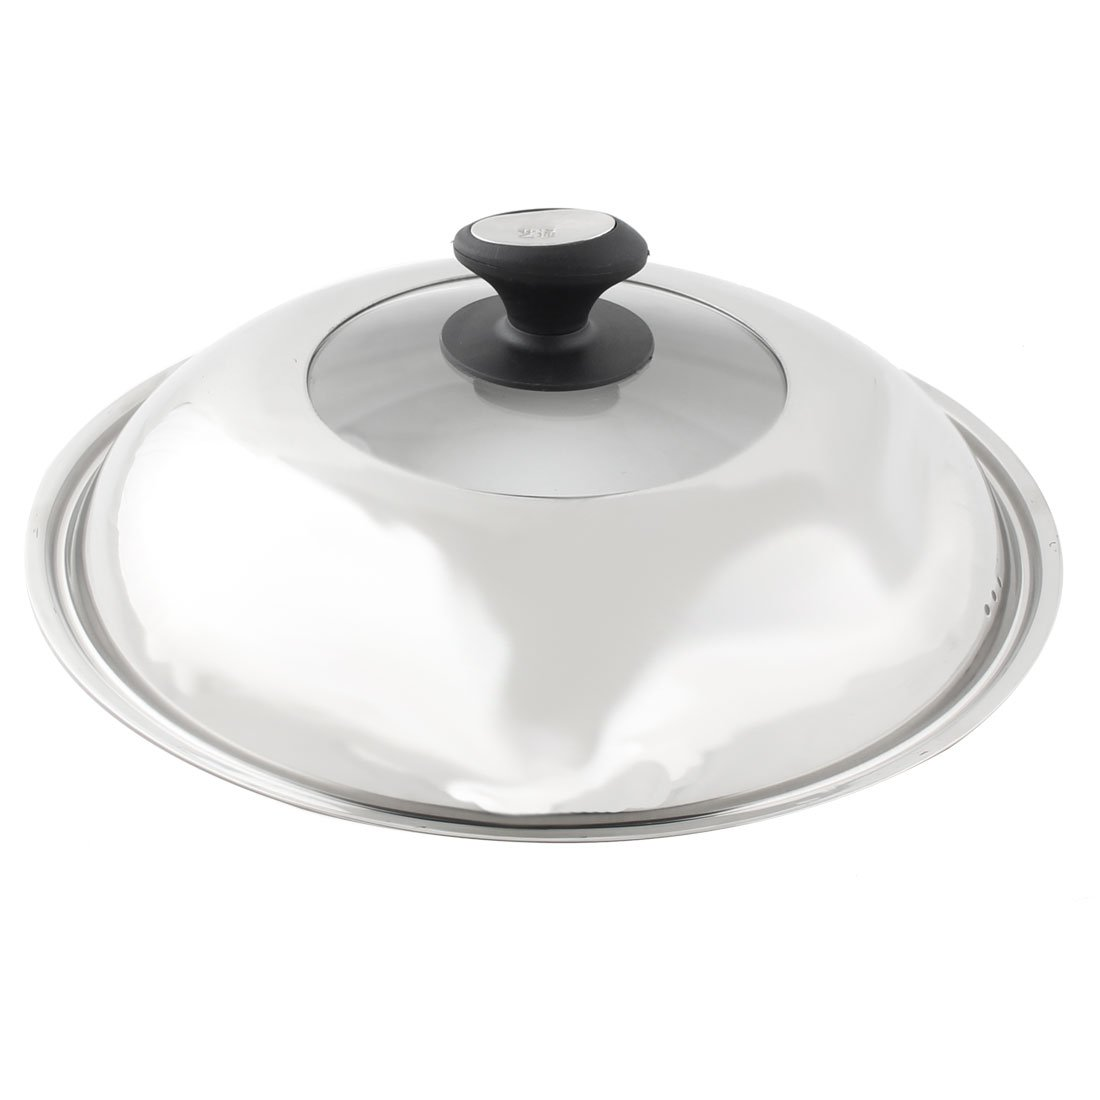 uxcell Stainless Steel Restaurant Cookware Cooker Pot Skillet Frying Pan Knob Lid Cover 36cm Dia US-SA-AJD-151966